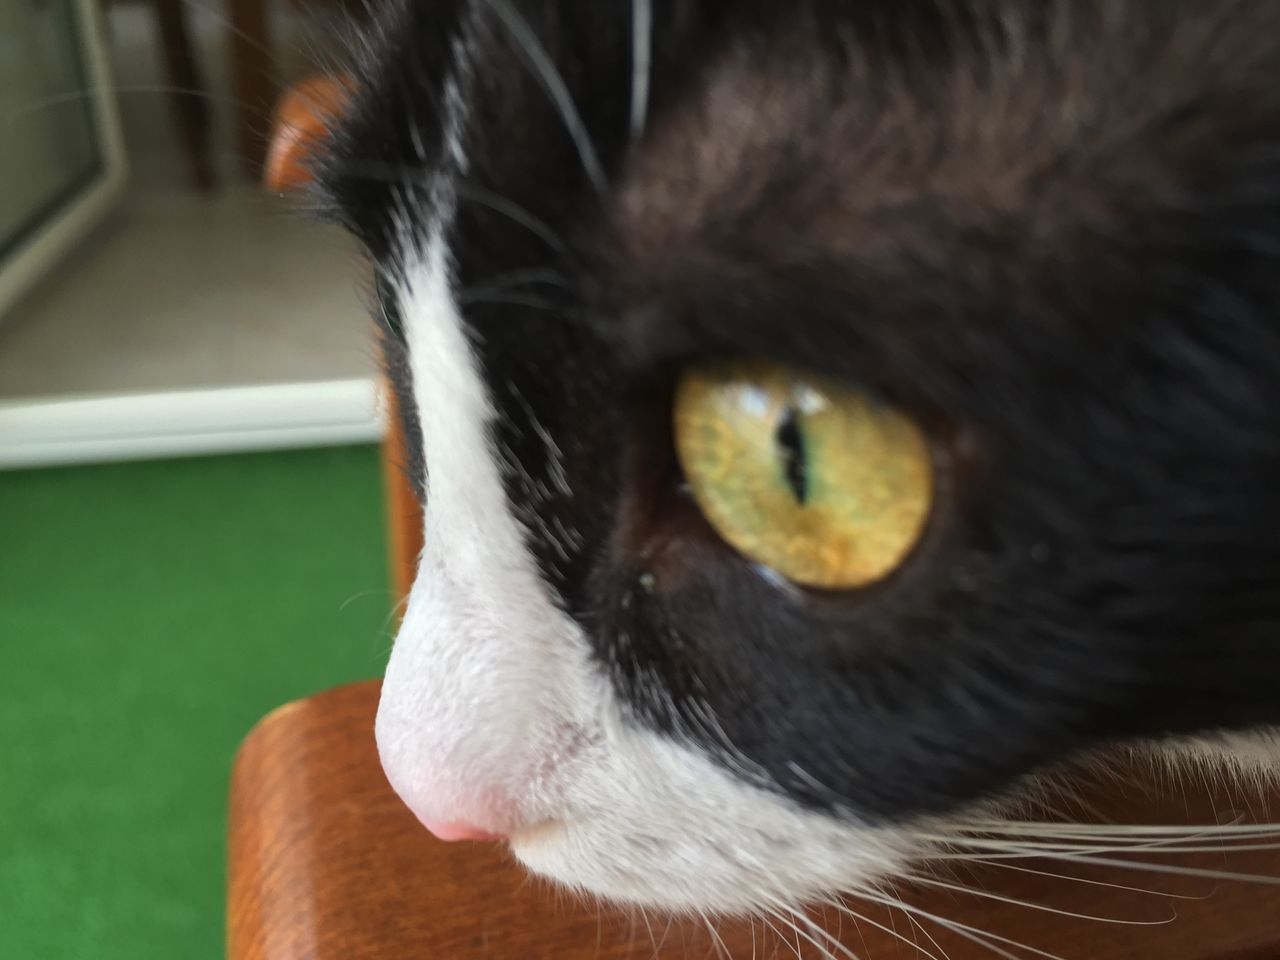 domestic animals, pets, one animal, domestic cat, animal themes, mammal, feline, whisker, animal head, cat, indoors, portrait, close-up, no people, looking at camera, yellow eyes, day